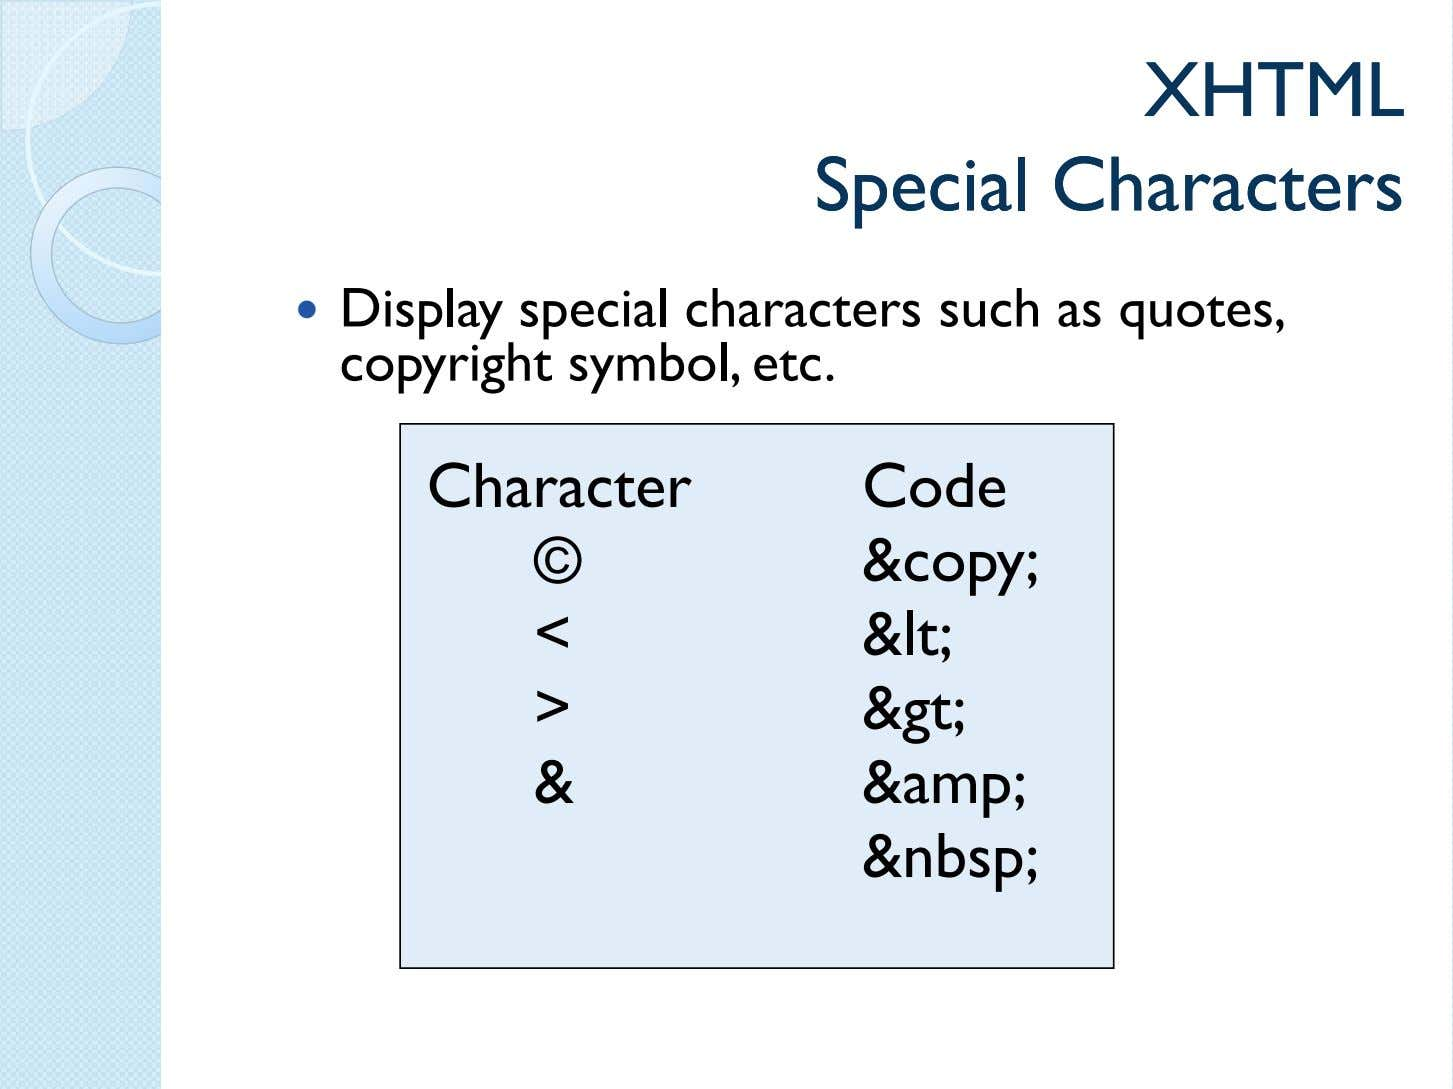 XHTMLXHTML SpecialSpecial CharactersCharacters Display special characters such as quotes, copyright symbol, etc.